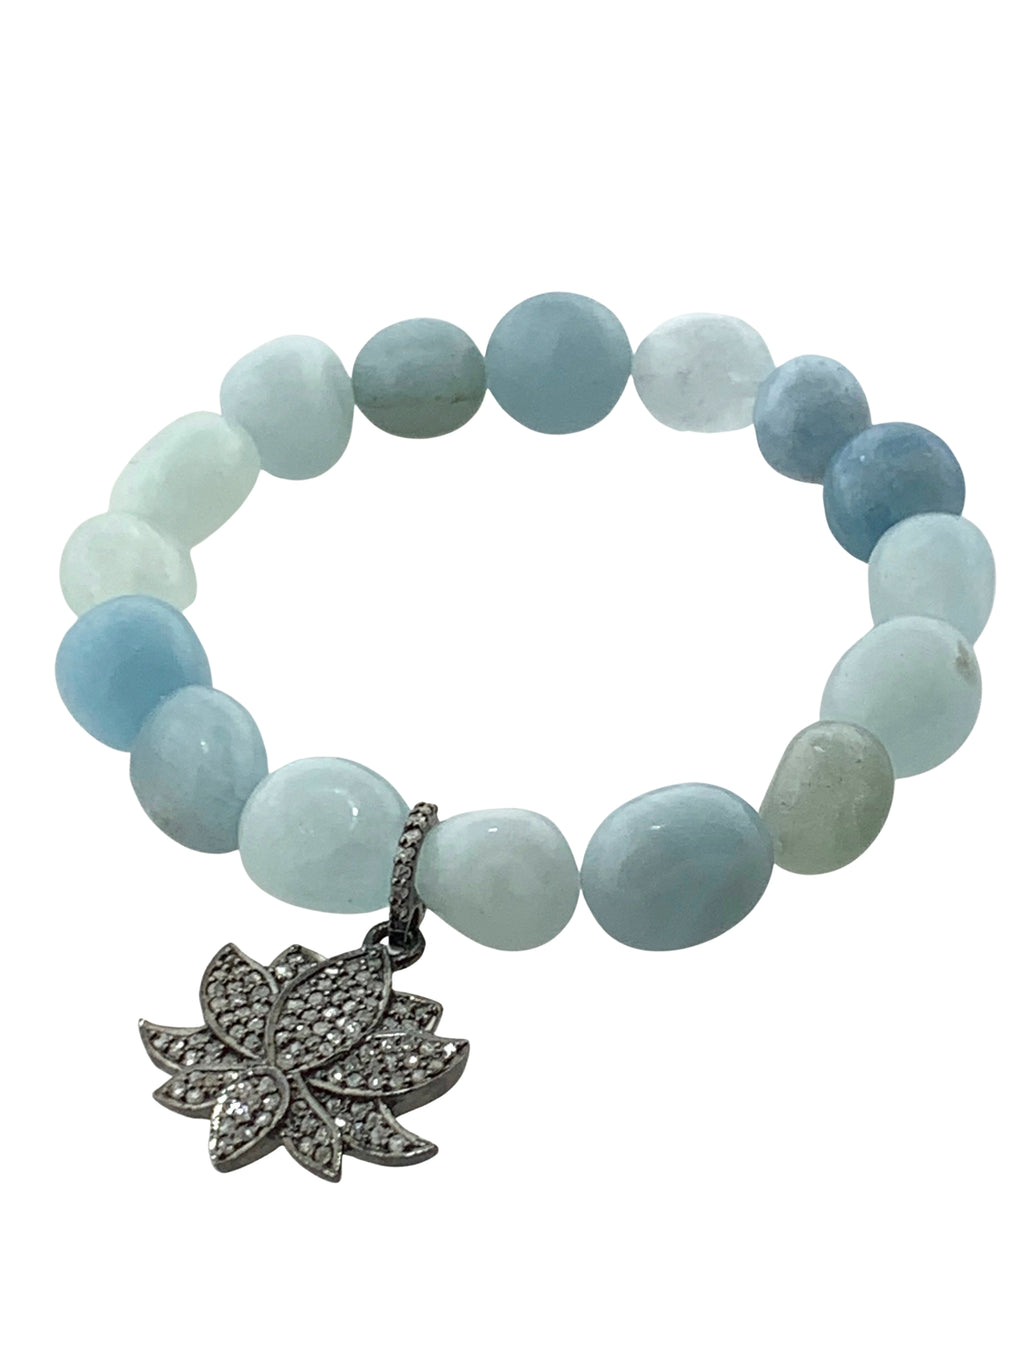 Aquamarine Beads with Pave Diamond Lotus Charm set in Sterling Silver